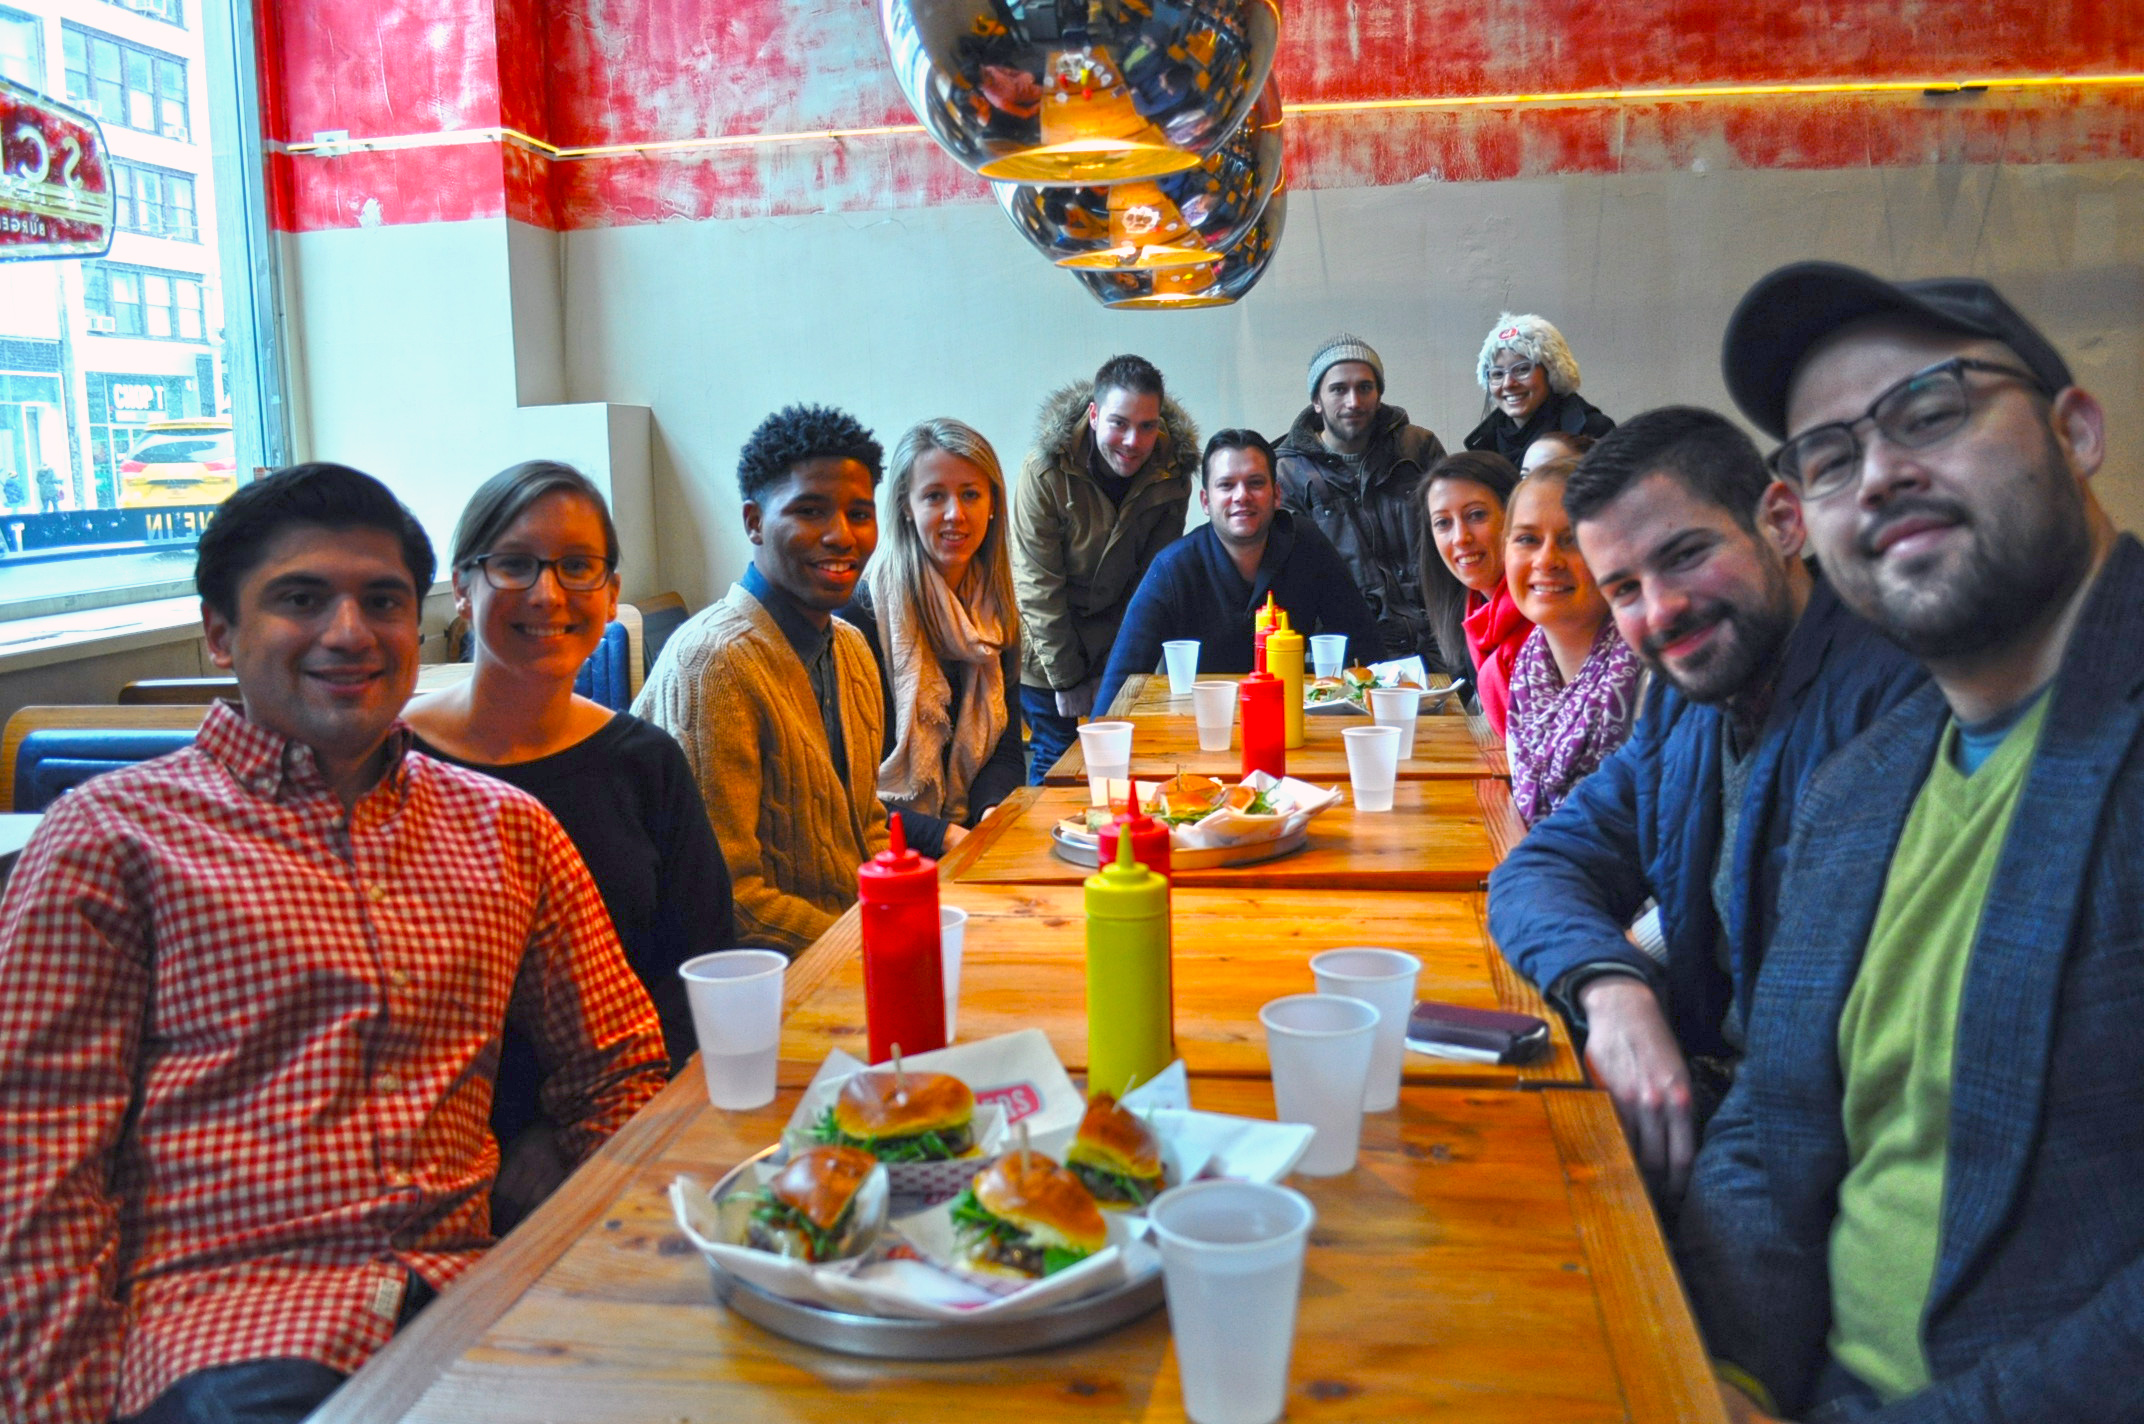 Enough food for lunch! - Maximum of 14 people on tour! We keep our groups small so it's an intimate, high quality experience.Wednesdays thru Sunday | 10:30am - 1:30pmDistance Walked: 1 mile (1.6 km)$56 for adults | $46 for kids (ages 4-10)Cost includes all food!